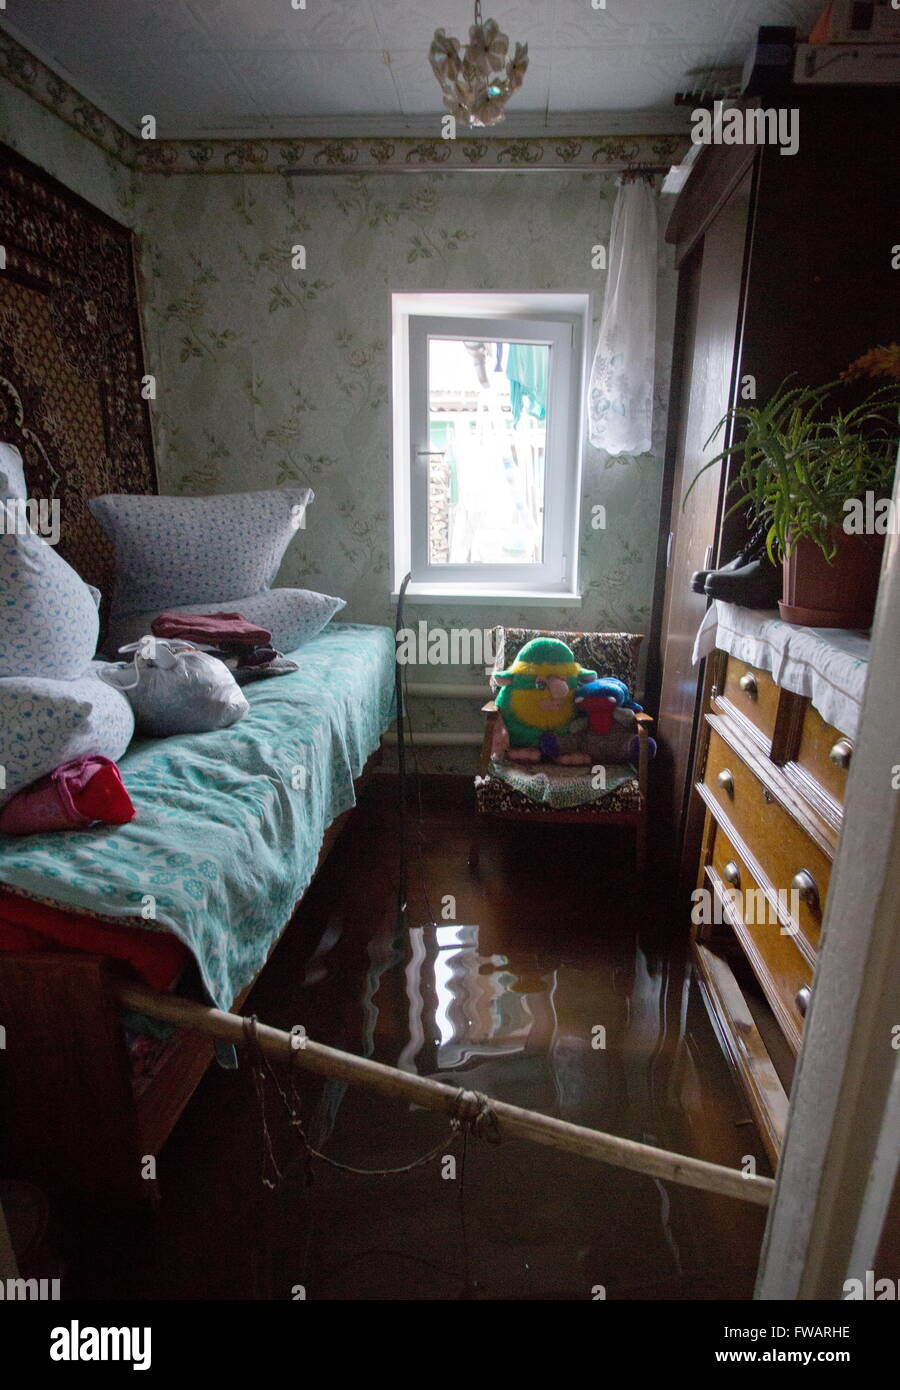 Omsk, Russia. 2nd Apr, 2016. A waterlogged private house. © Dmitry Feoktistov/TASS/Alamy Live News Stock Photo